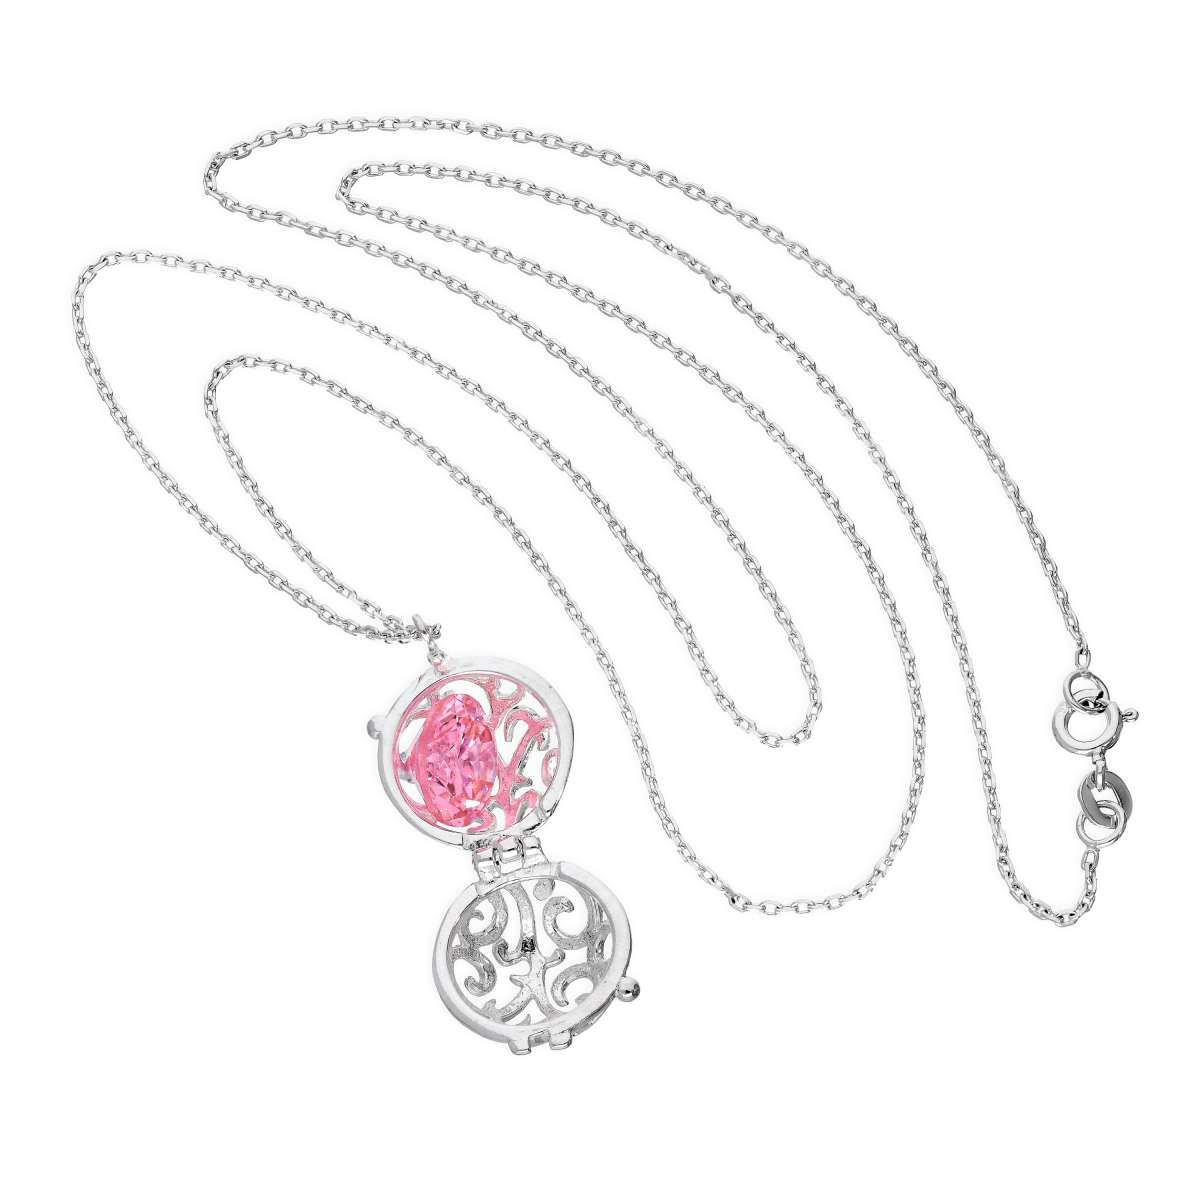 Alterative image for Sterling Silver Filigree Sphere Locket with Pink CZ Crystal